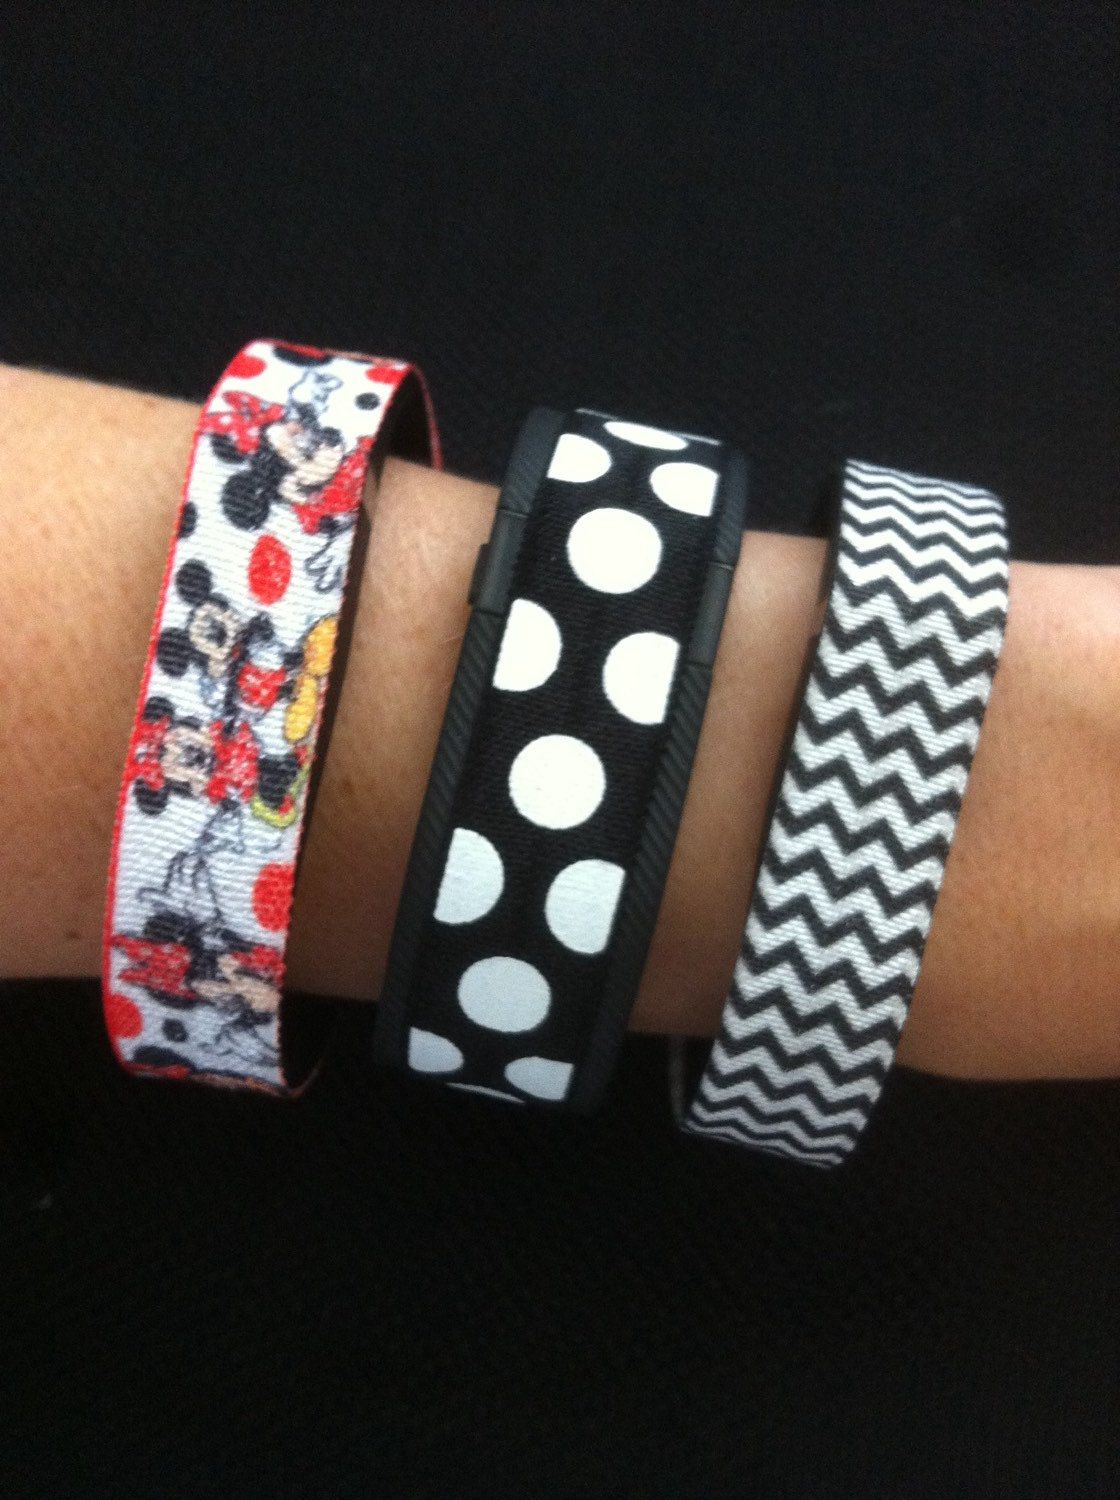 Elastic Bands For Fitbit Flex Fitbit Charge Or Chargehr